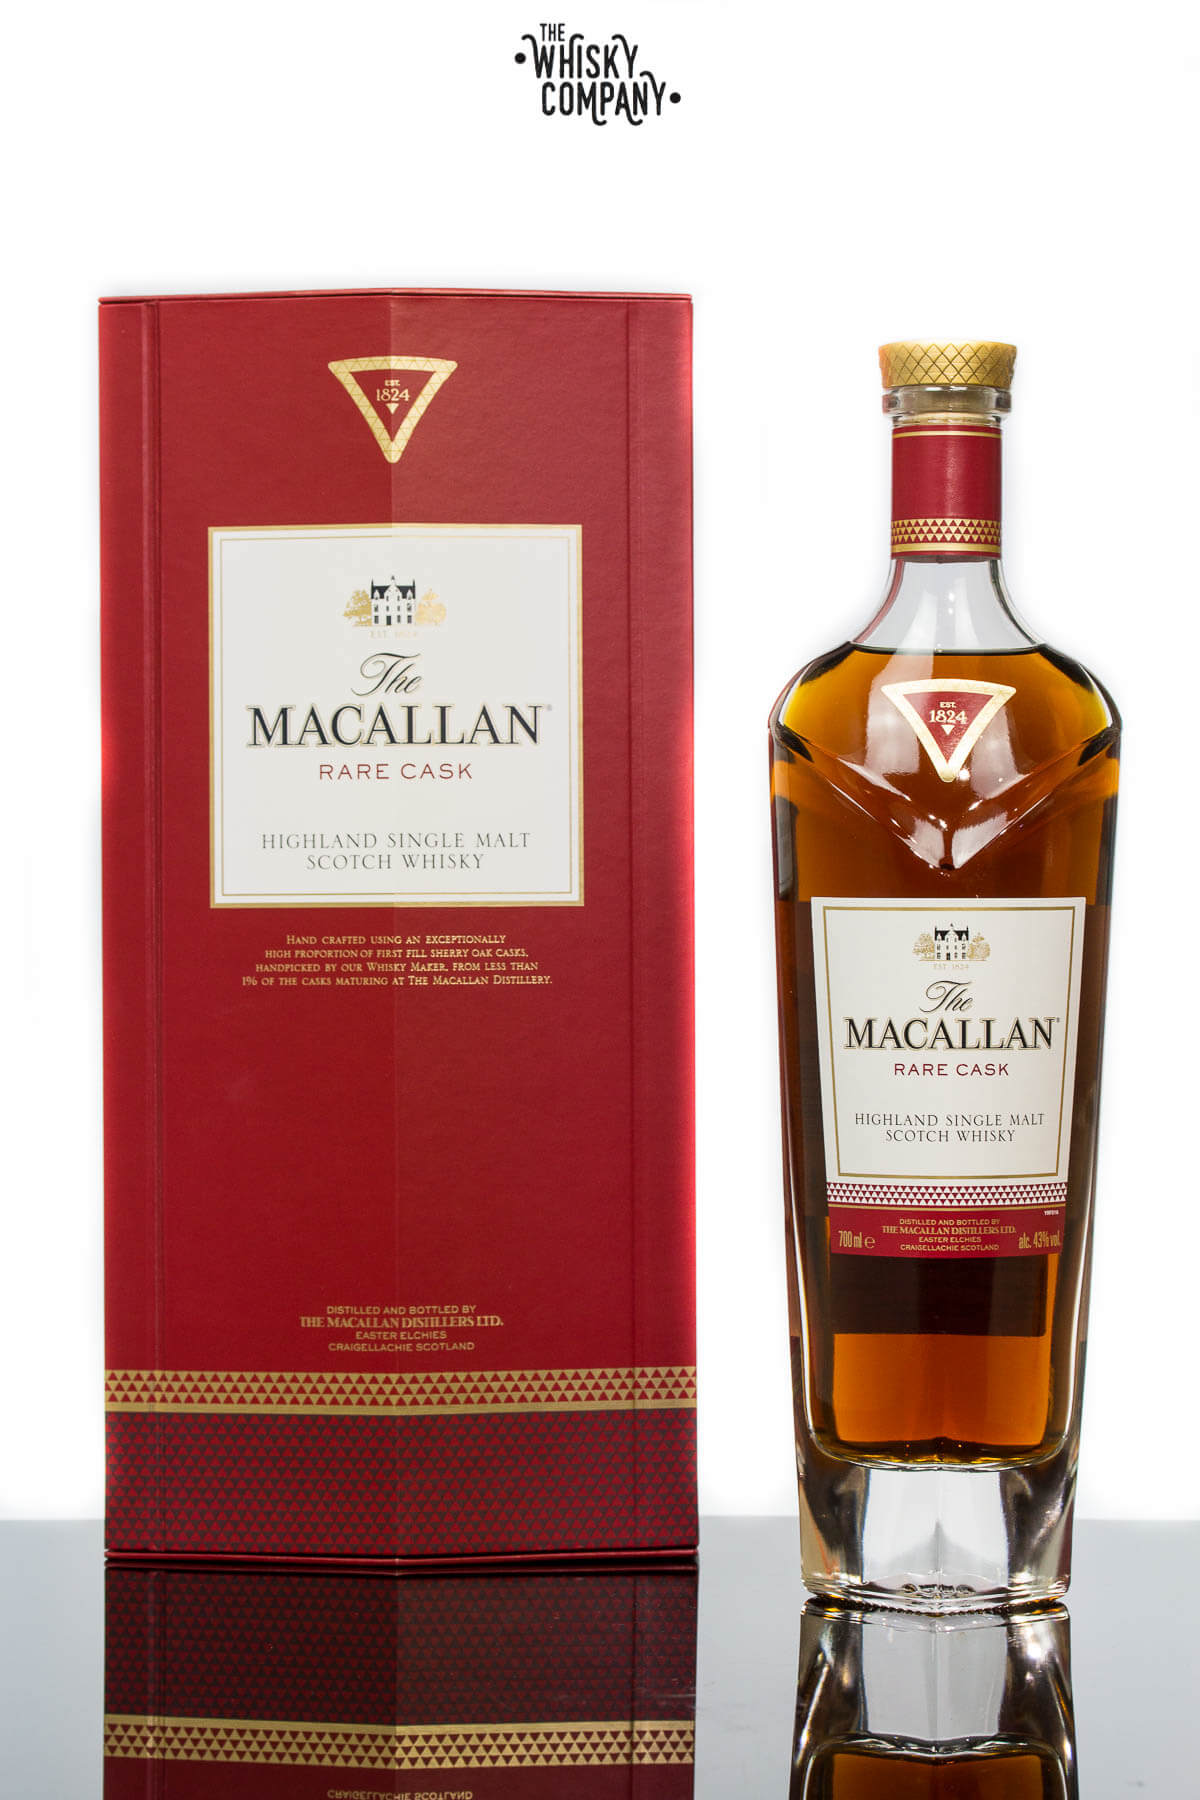 The Macallan Rare Cask Single Malt Scotch Whisky (700ml)